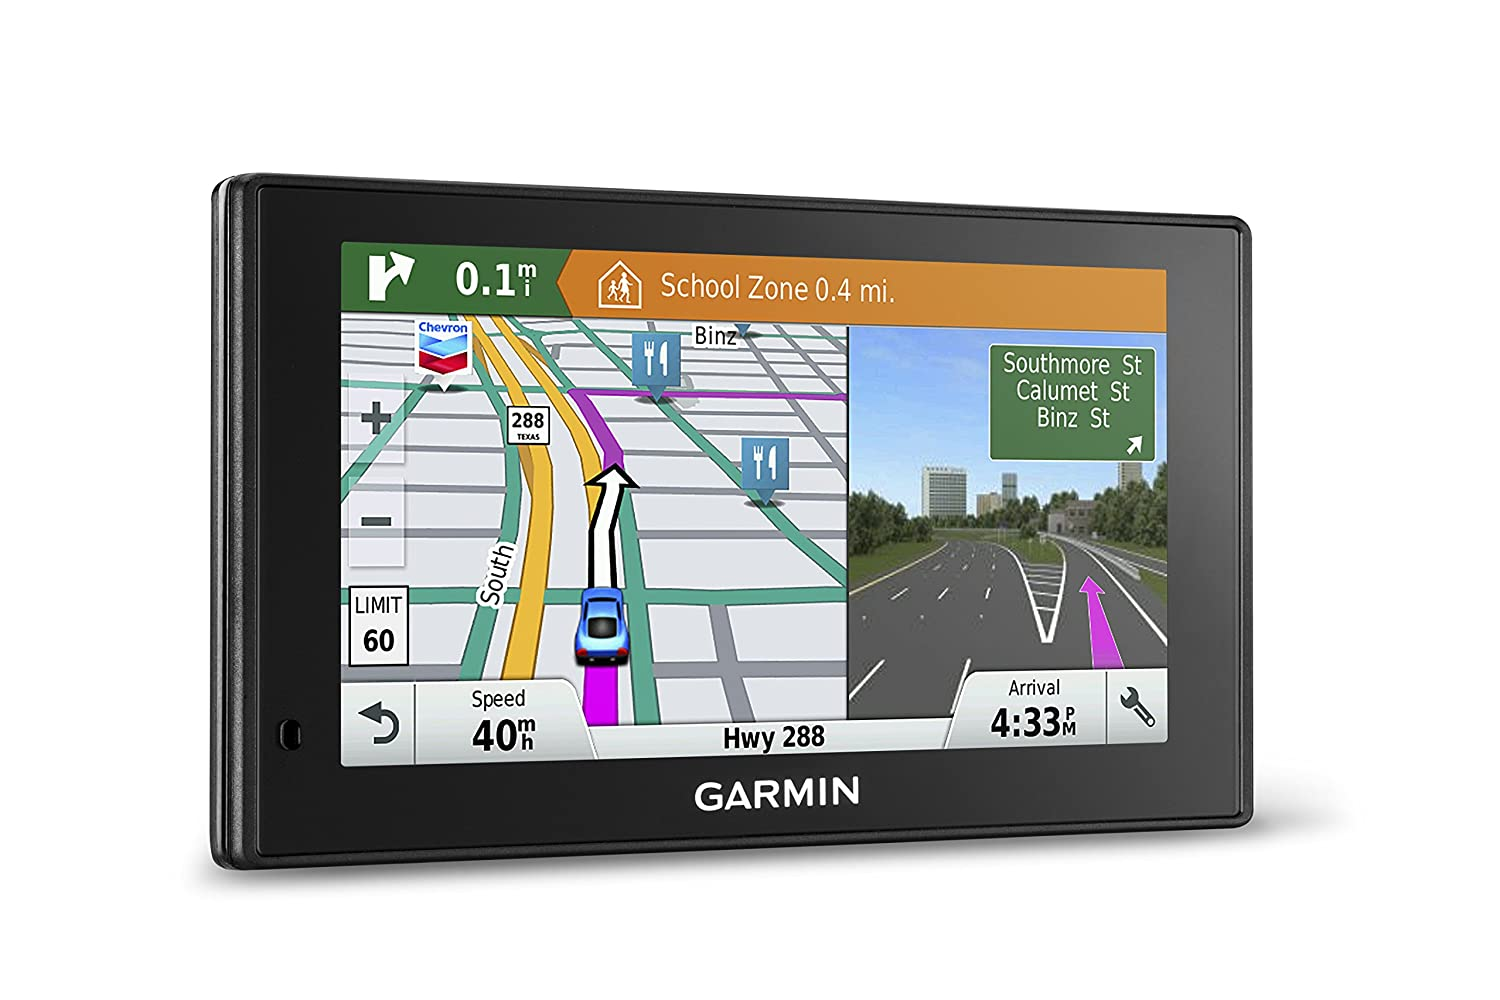 $199.99 (was $369.99) Garmin DriveSmart 60 6-Inch GPS Navigation System with Smart Notifications and Lifetime North America